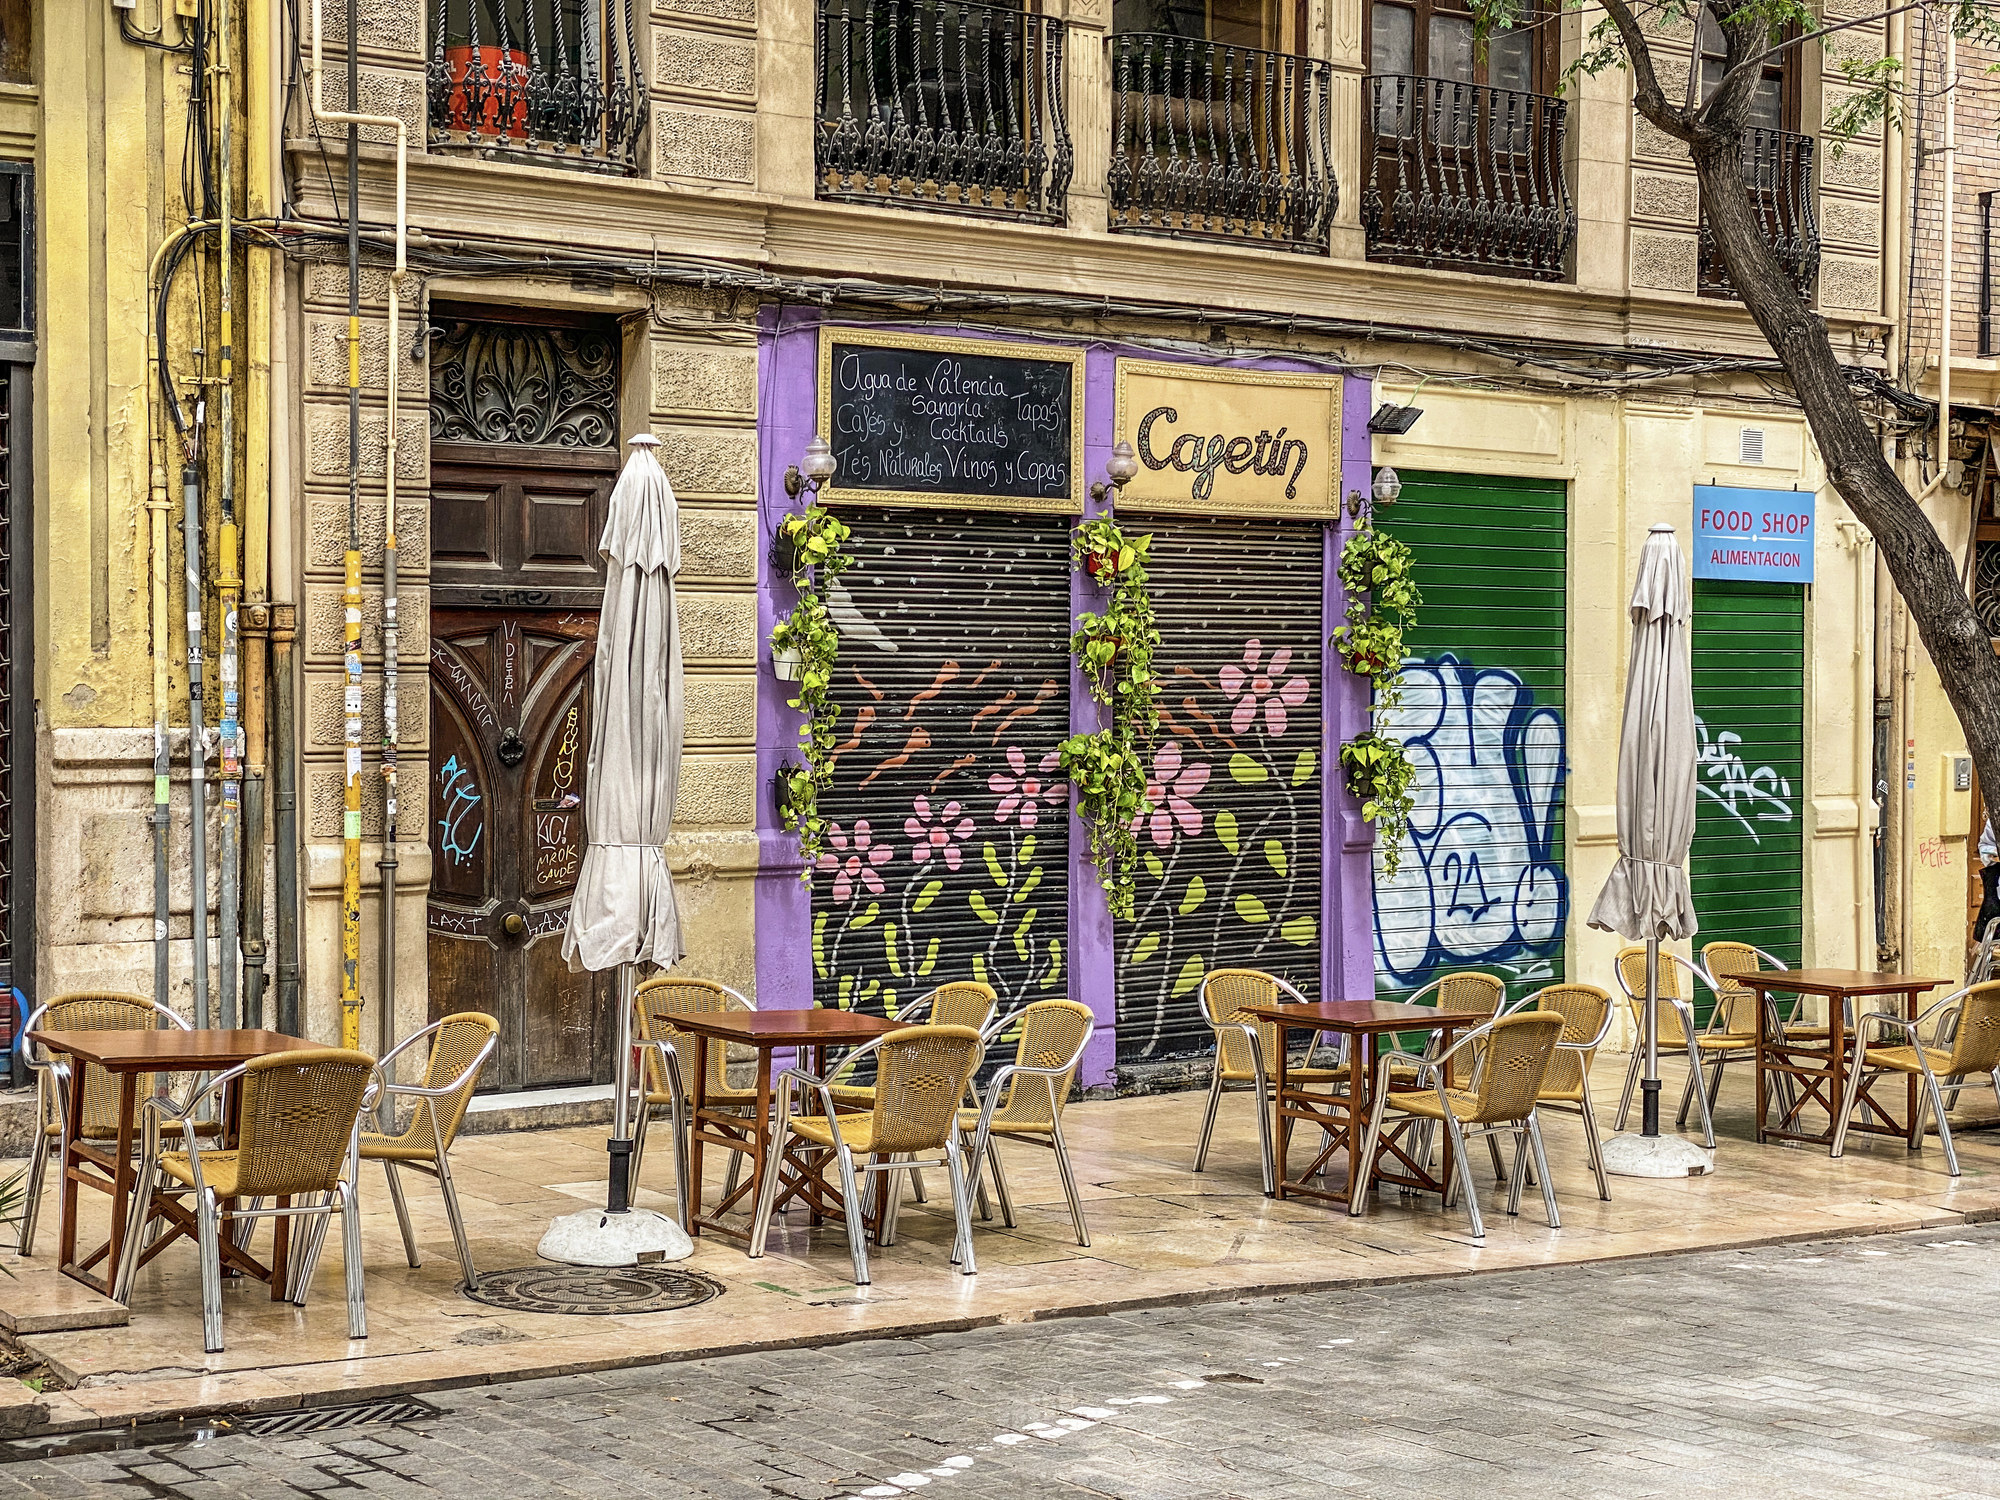 A Spanish restaurant that is closed.